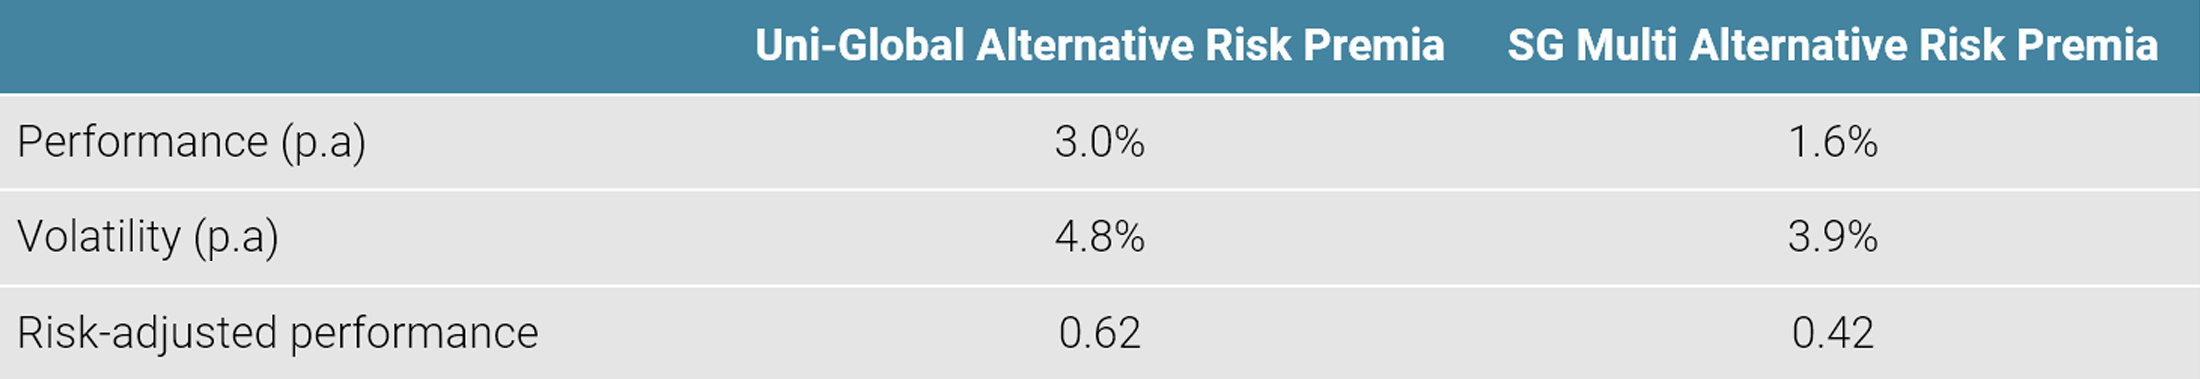 Figure 5: Risk-adjusted Performance Since Inception (13.12.2016)